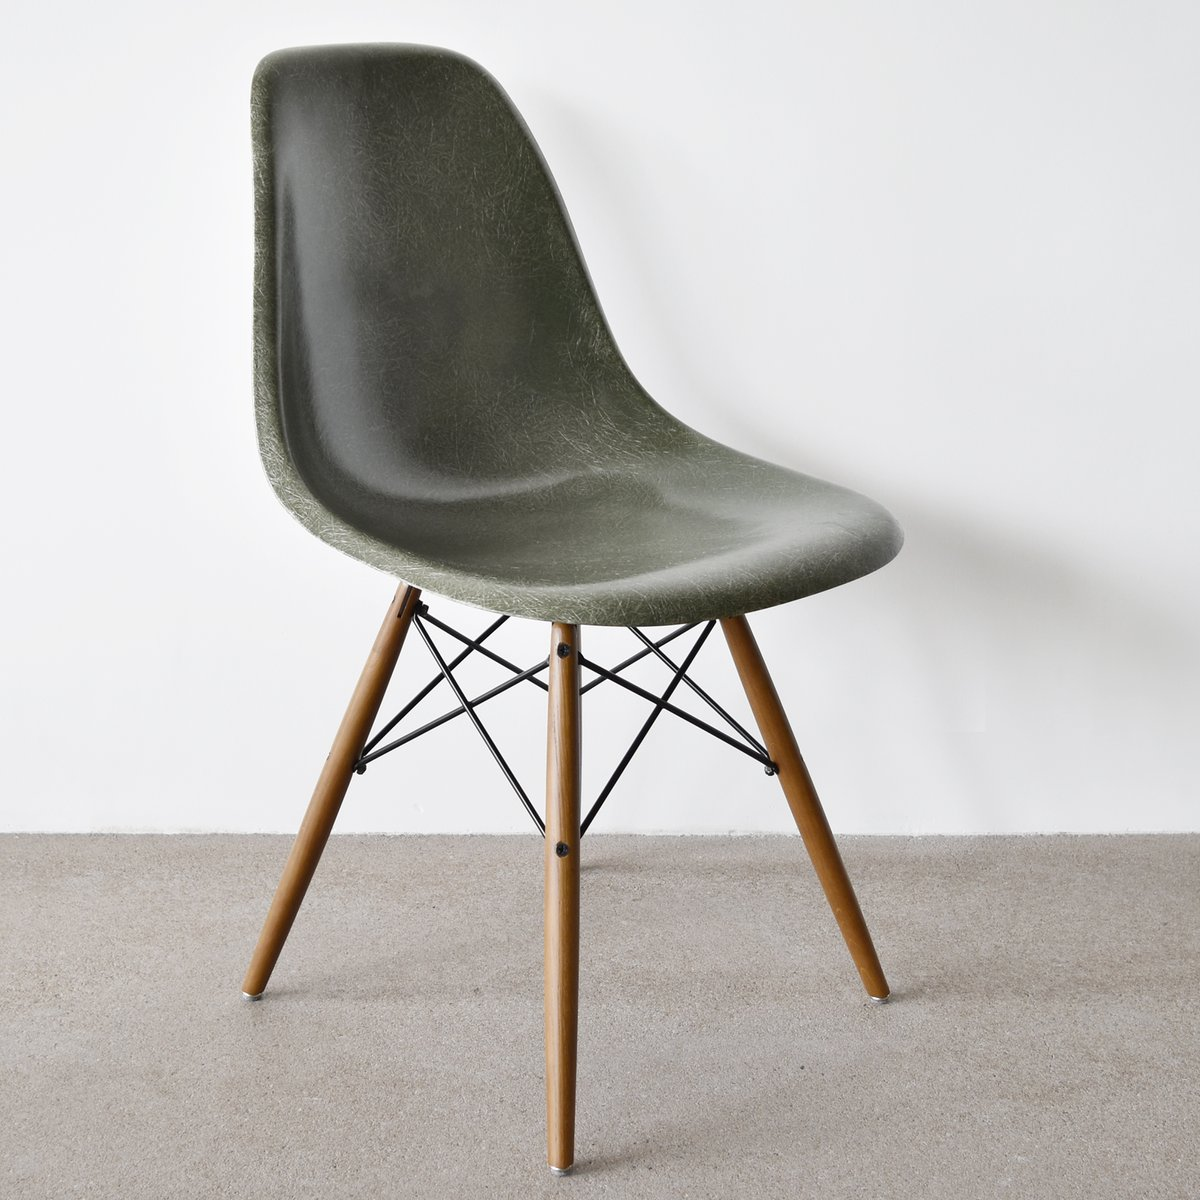 olive green dsw chair by charles and ray eames for herman. Black Bedroom Furniture Sets. Home Design Ideas